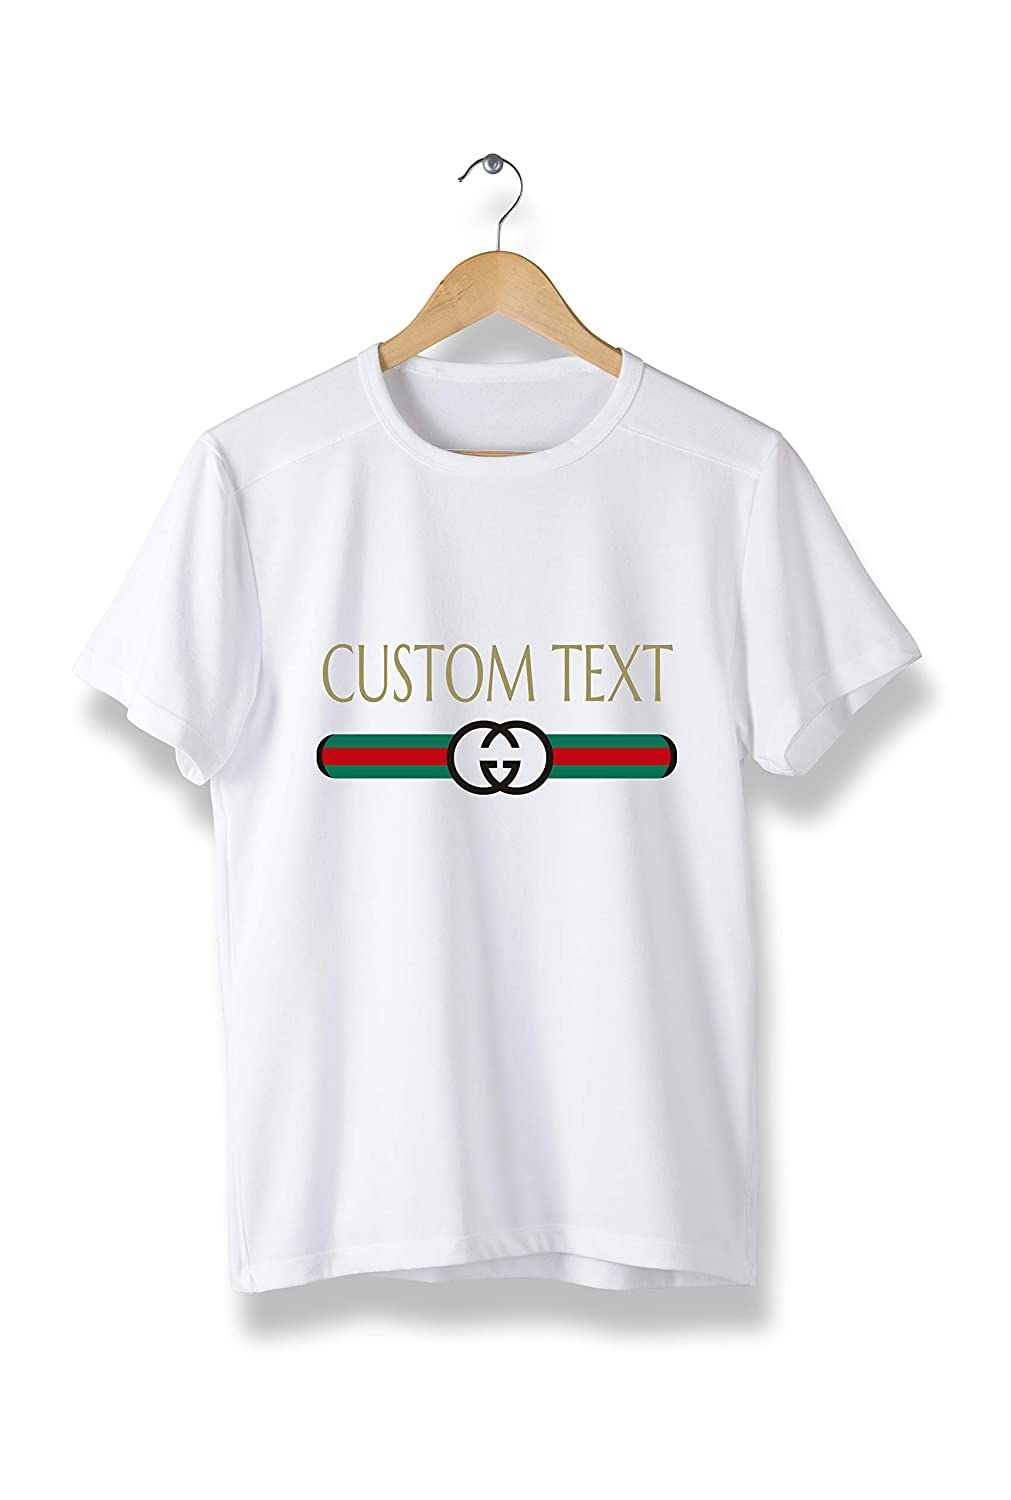 a51f4850d7 Custom Text Gucci Style t-Shirt - Cool Modern Brand tees Unisex (Y09) White